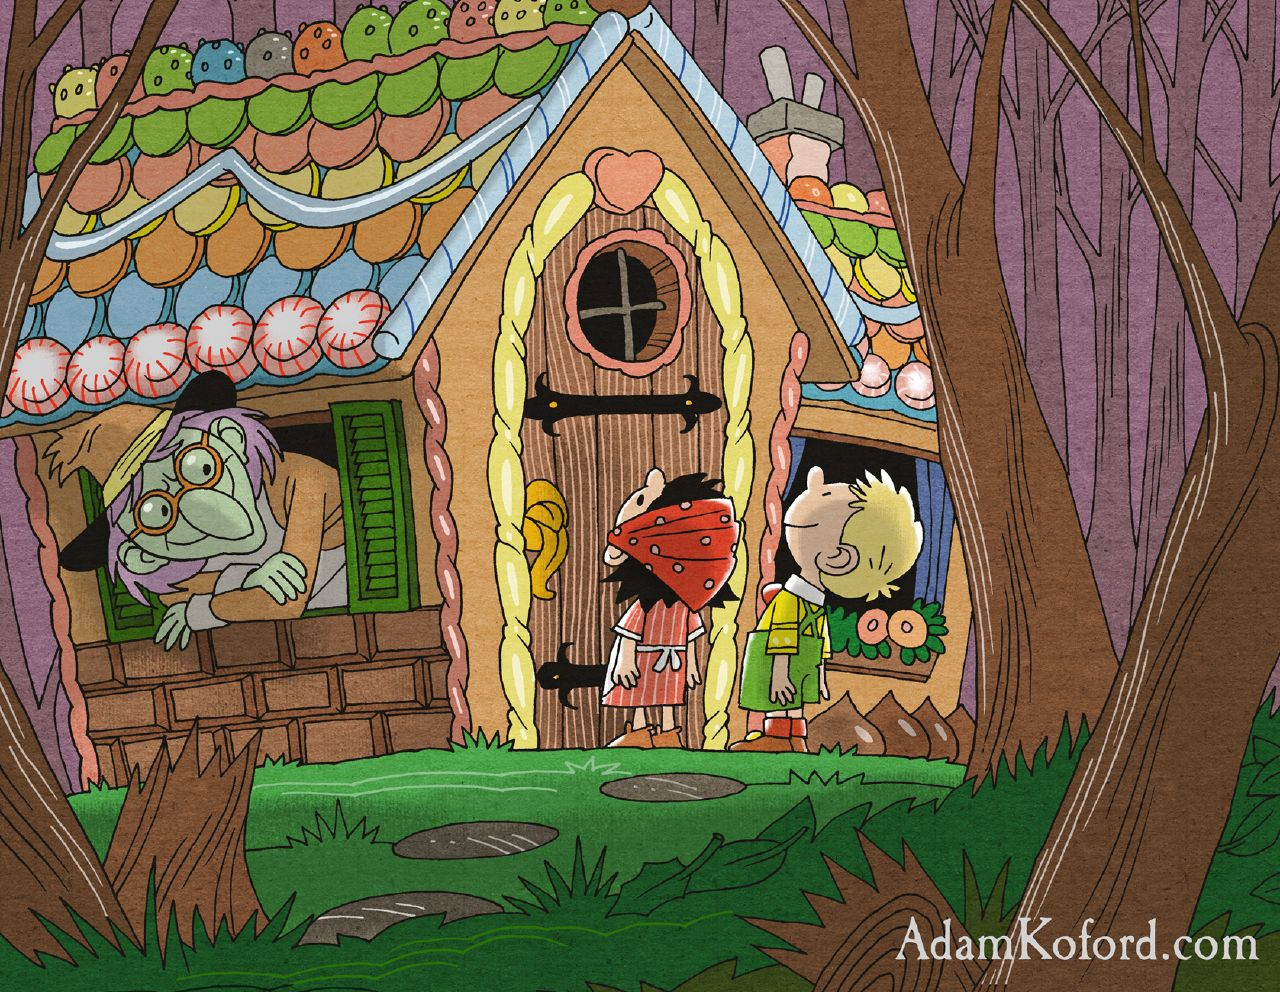 hansel and gretel essay Miscellaneous essays: hansel and gretel remake hansel and gretel remake this essay hansel and gretel remake and other 63,000+ term papers, college essay examples and free essays are available now on reviewessayscom.